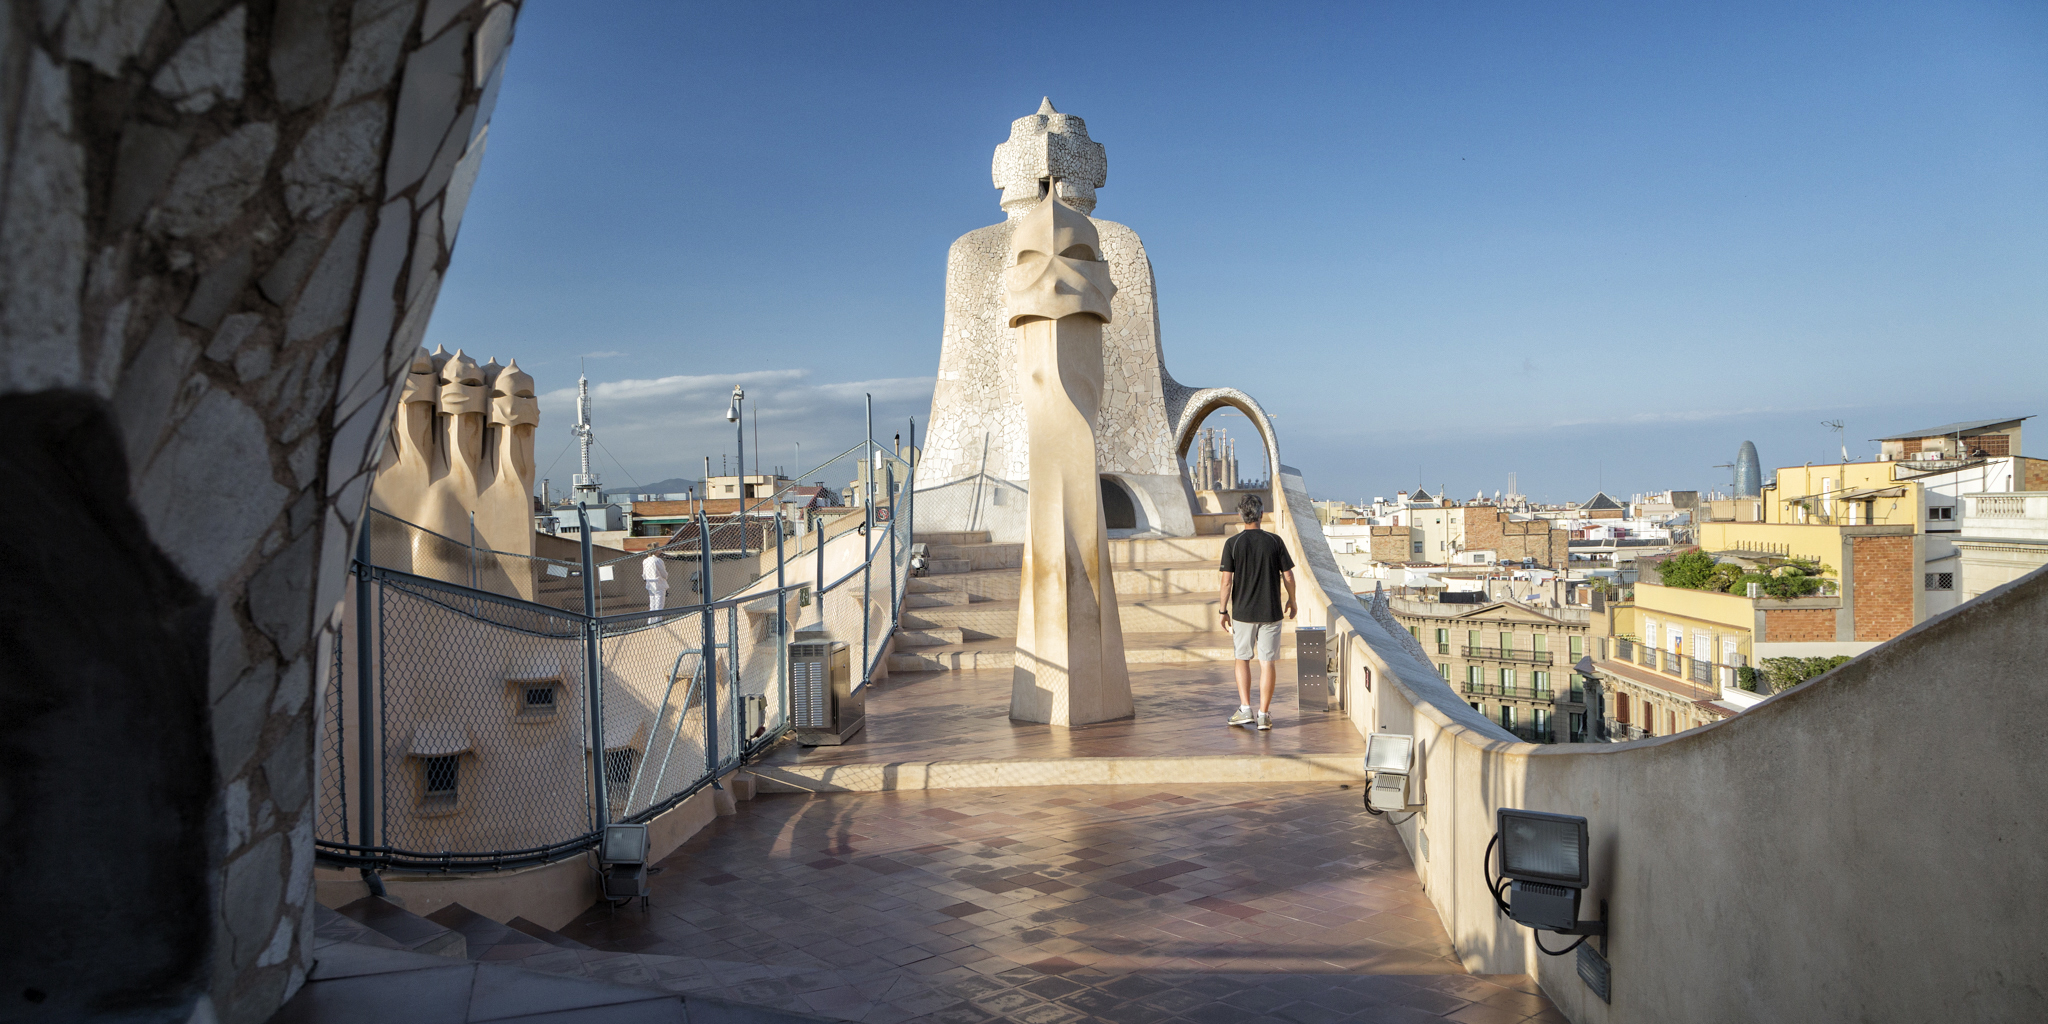 Late afternoon on the roof of La Pedrera